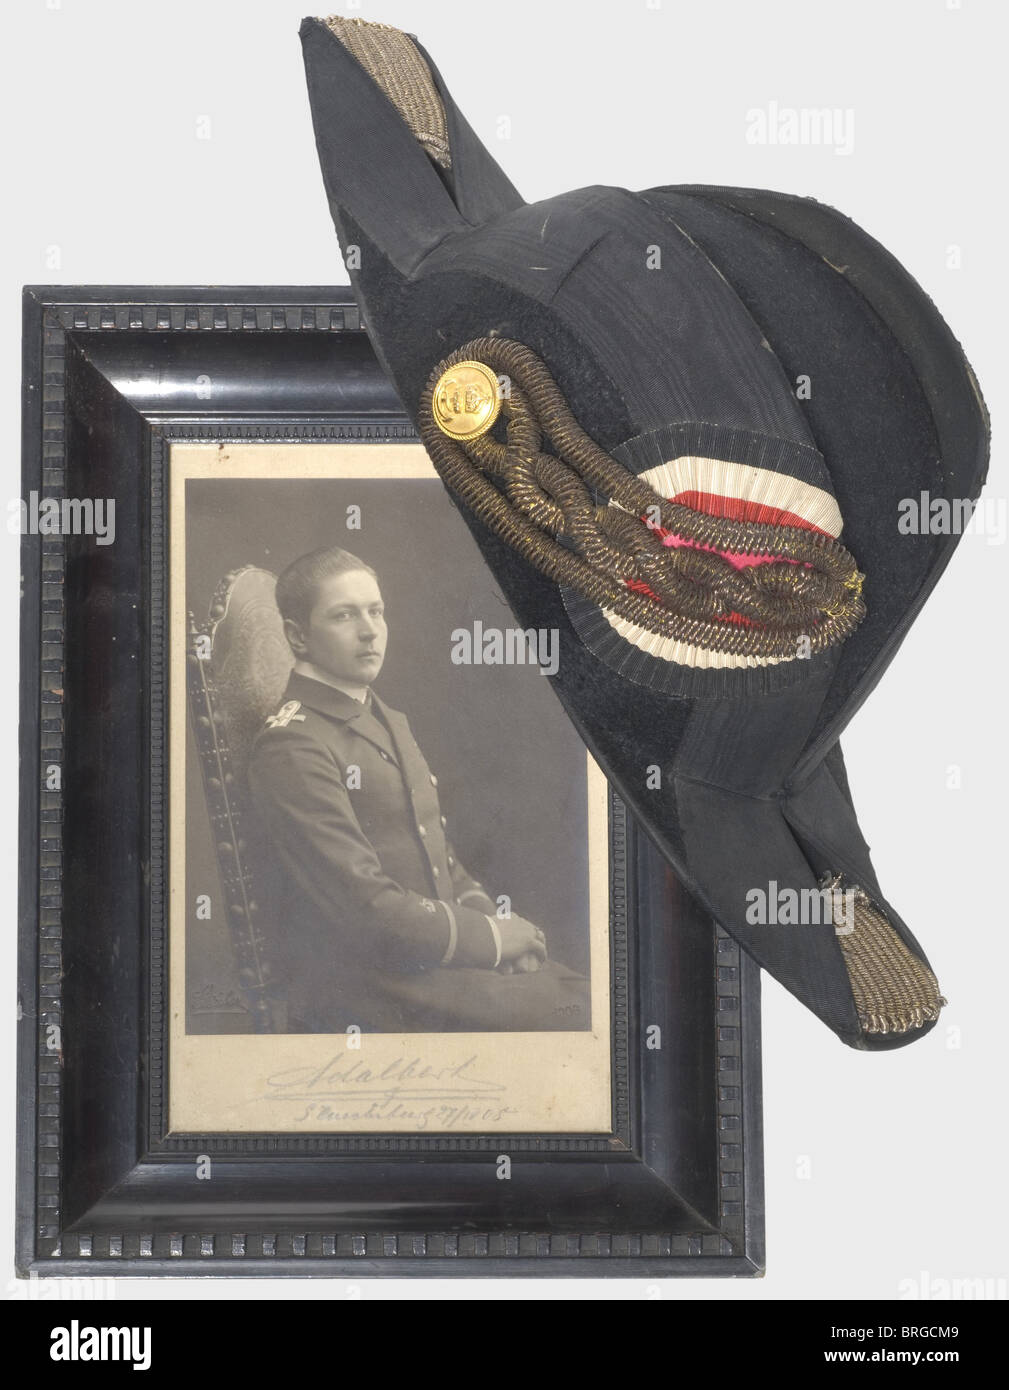 Prince Adalbert Ferdinand Berengar of Prussia (1884 - 1948), a cocked hat and a photograph Cocked hat of black mohair - Stock Image